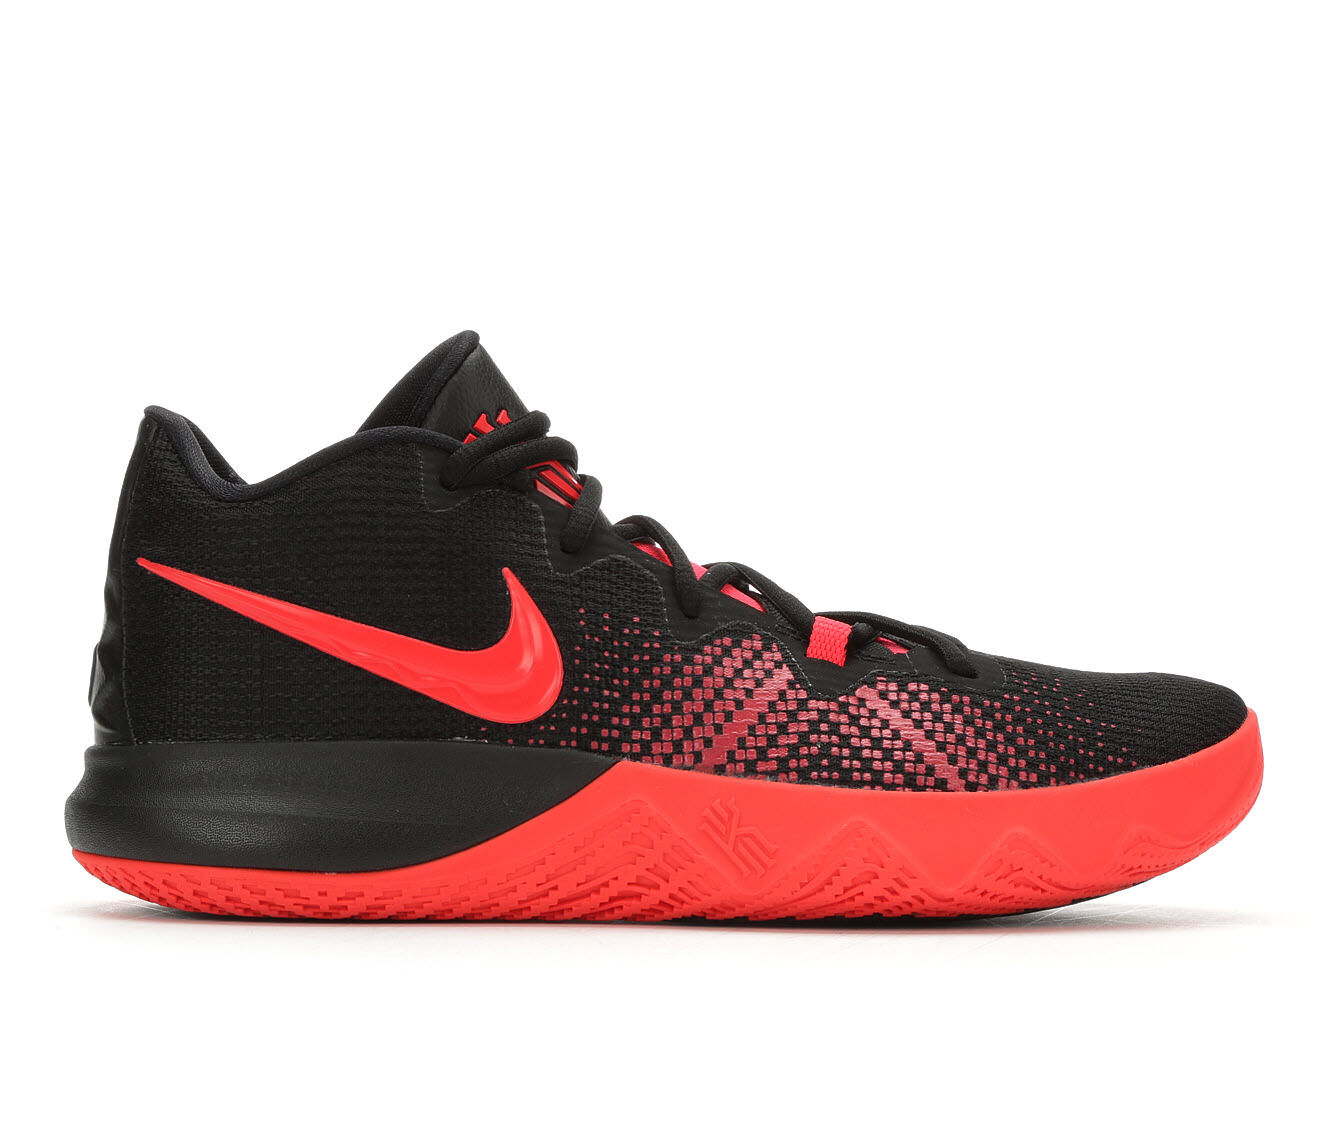 Men u0026 39 s Nike Kyrie Flytrap High Top Basketball Shoes 54d99f595c